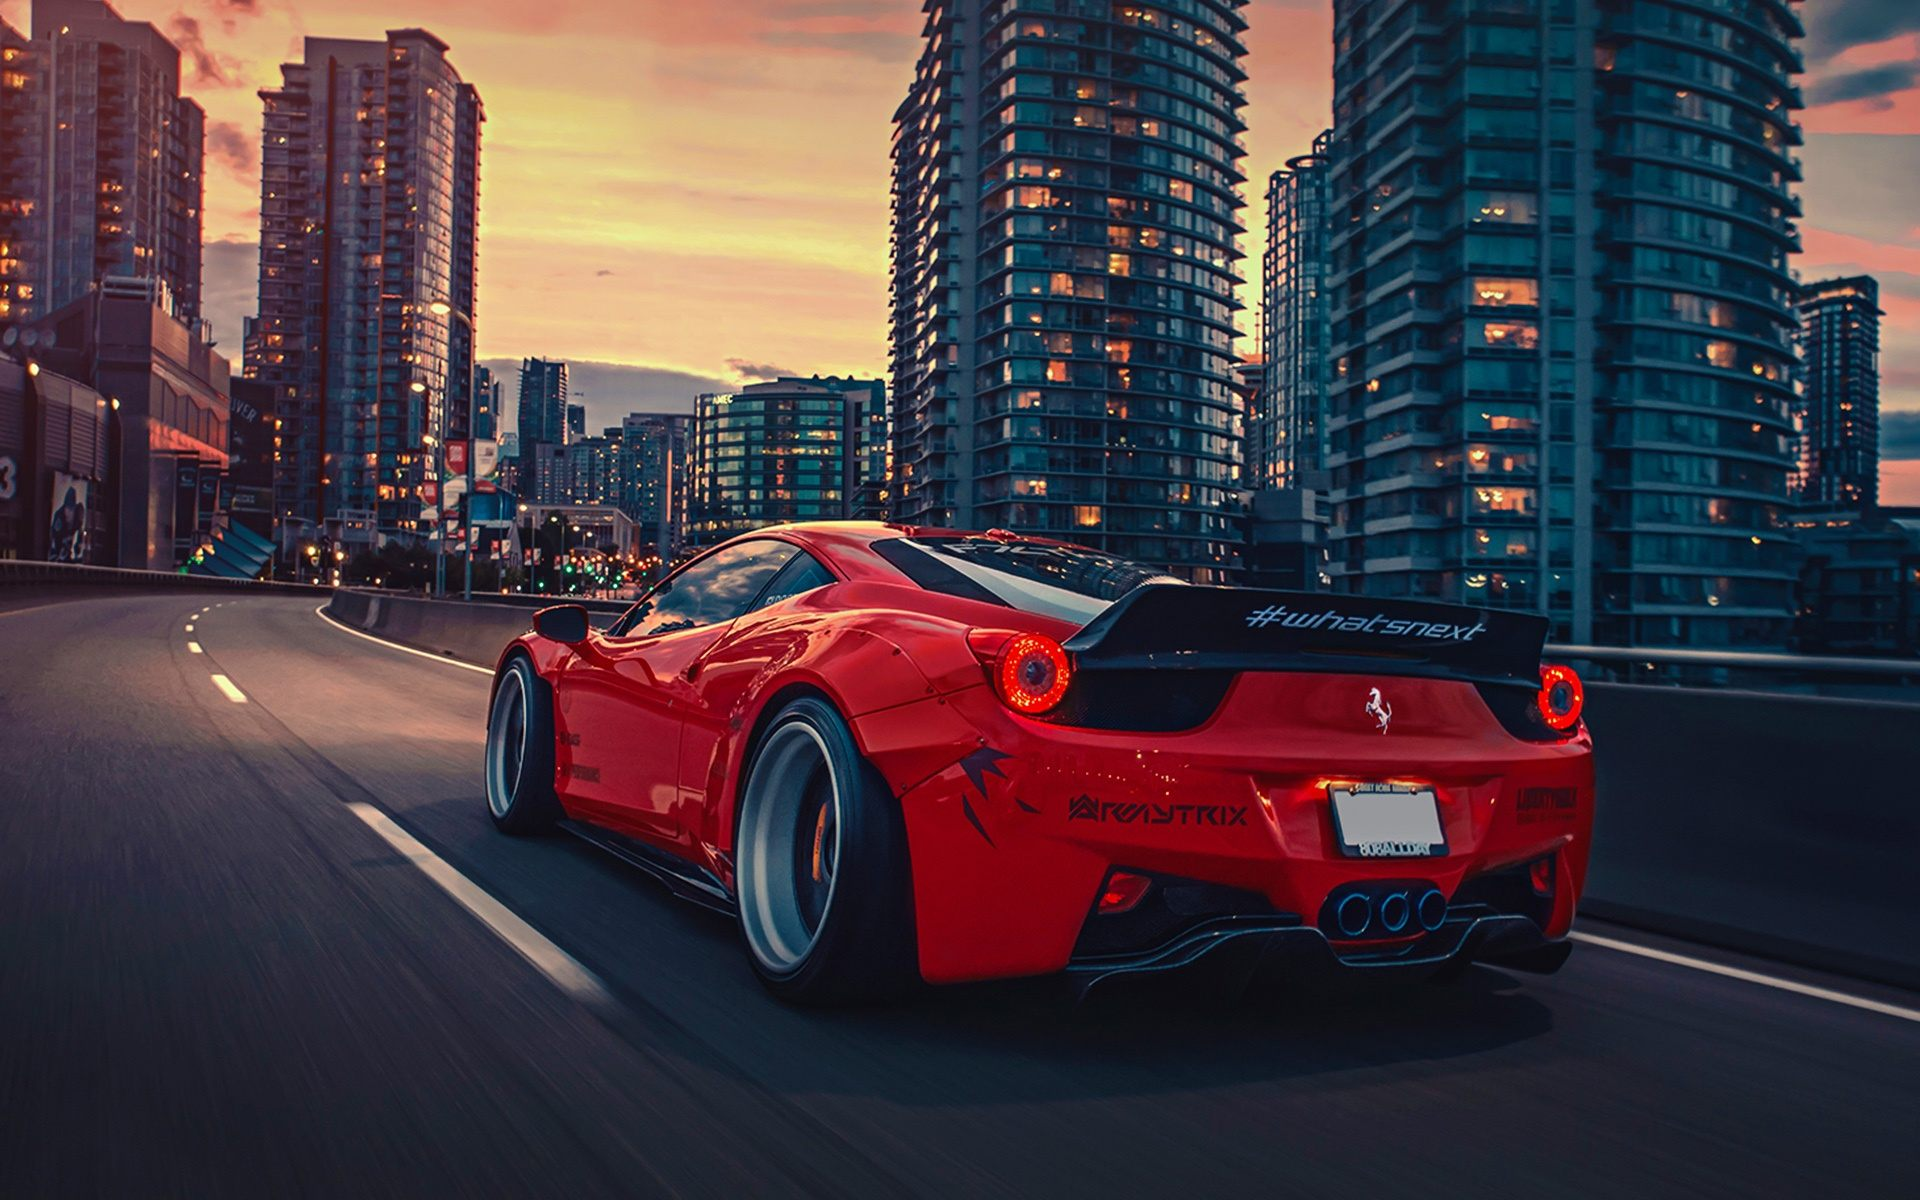 Collection of Ferrari Wallpaper on HDWallpapers